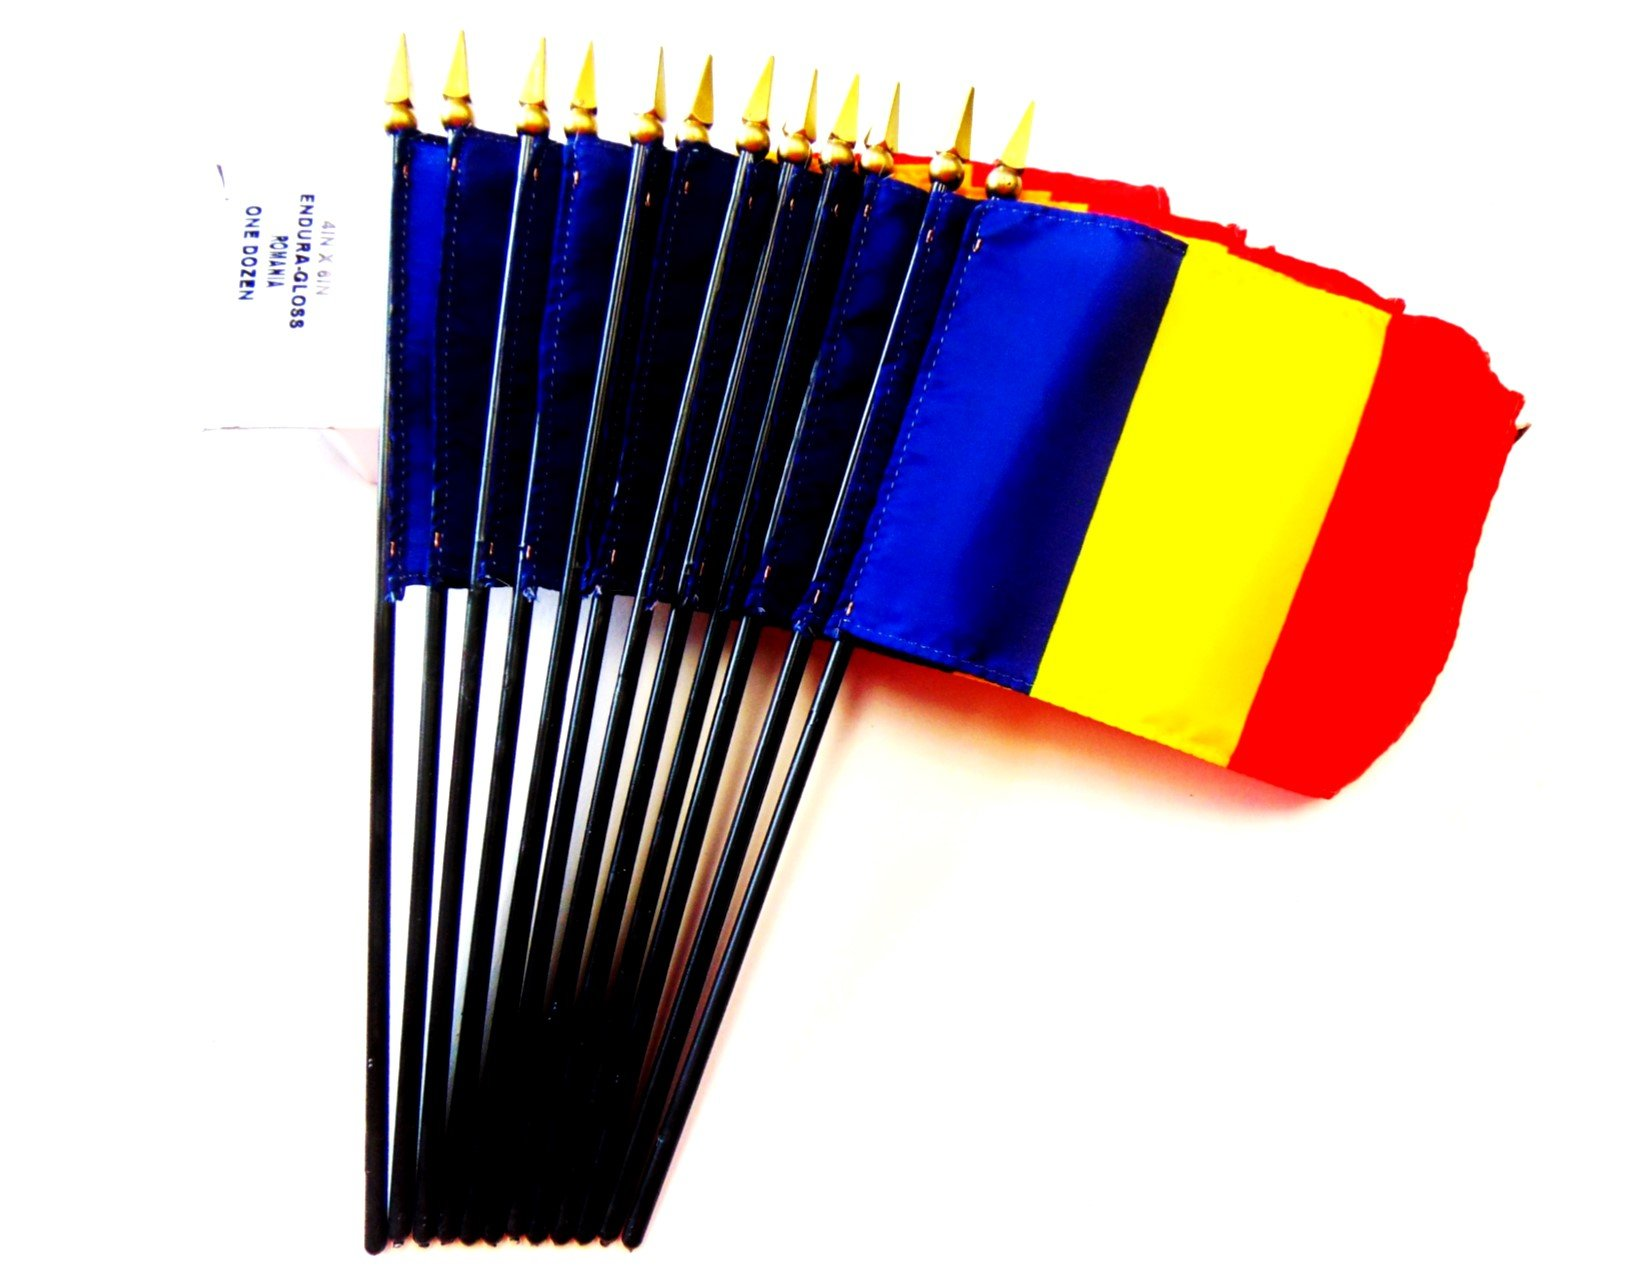 MADE IN USA!! Box of 12 Romania 4''x6'' Miniature Desk & Table Flags; 12 American Made Small Mini Romanian Flags in a Custom Made Cardboard Box Specifically Made for These Flags